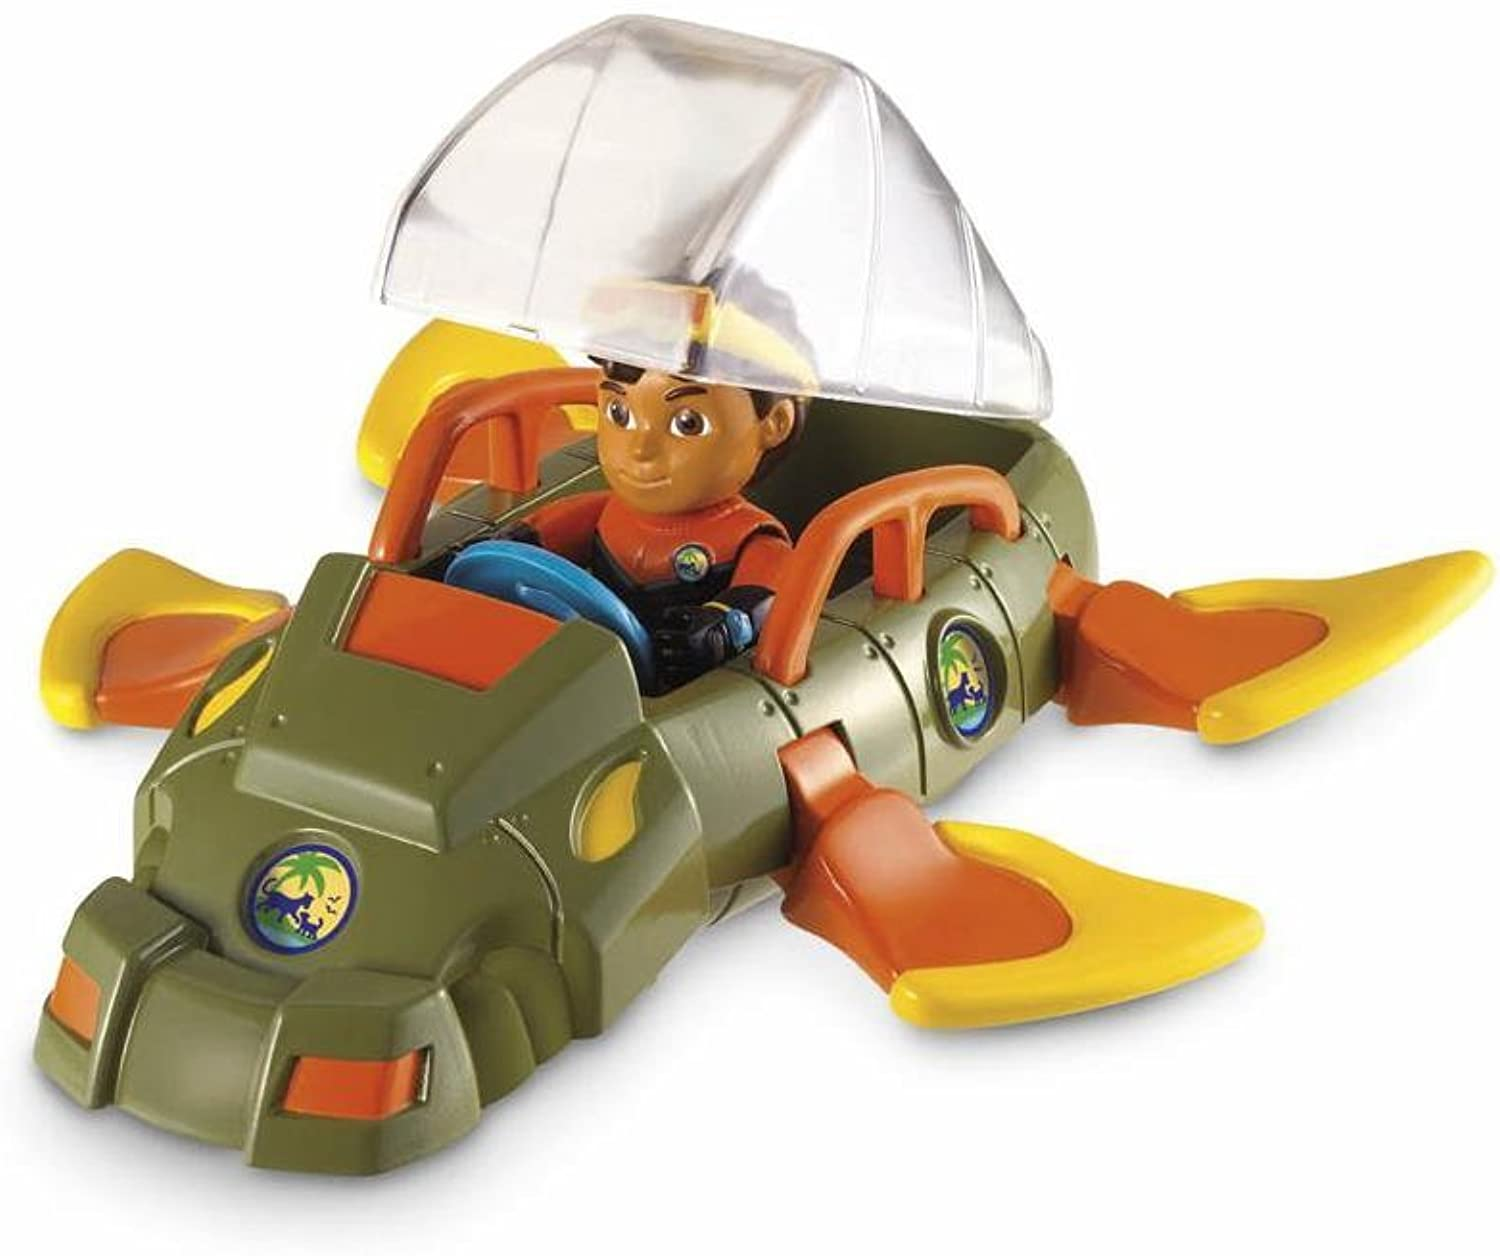 Fisher Price Go Diego Go Animal Vehicles Sea Glider B0016J53P6 Qualität zuerst  | Neues Produkt